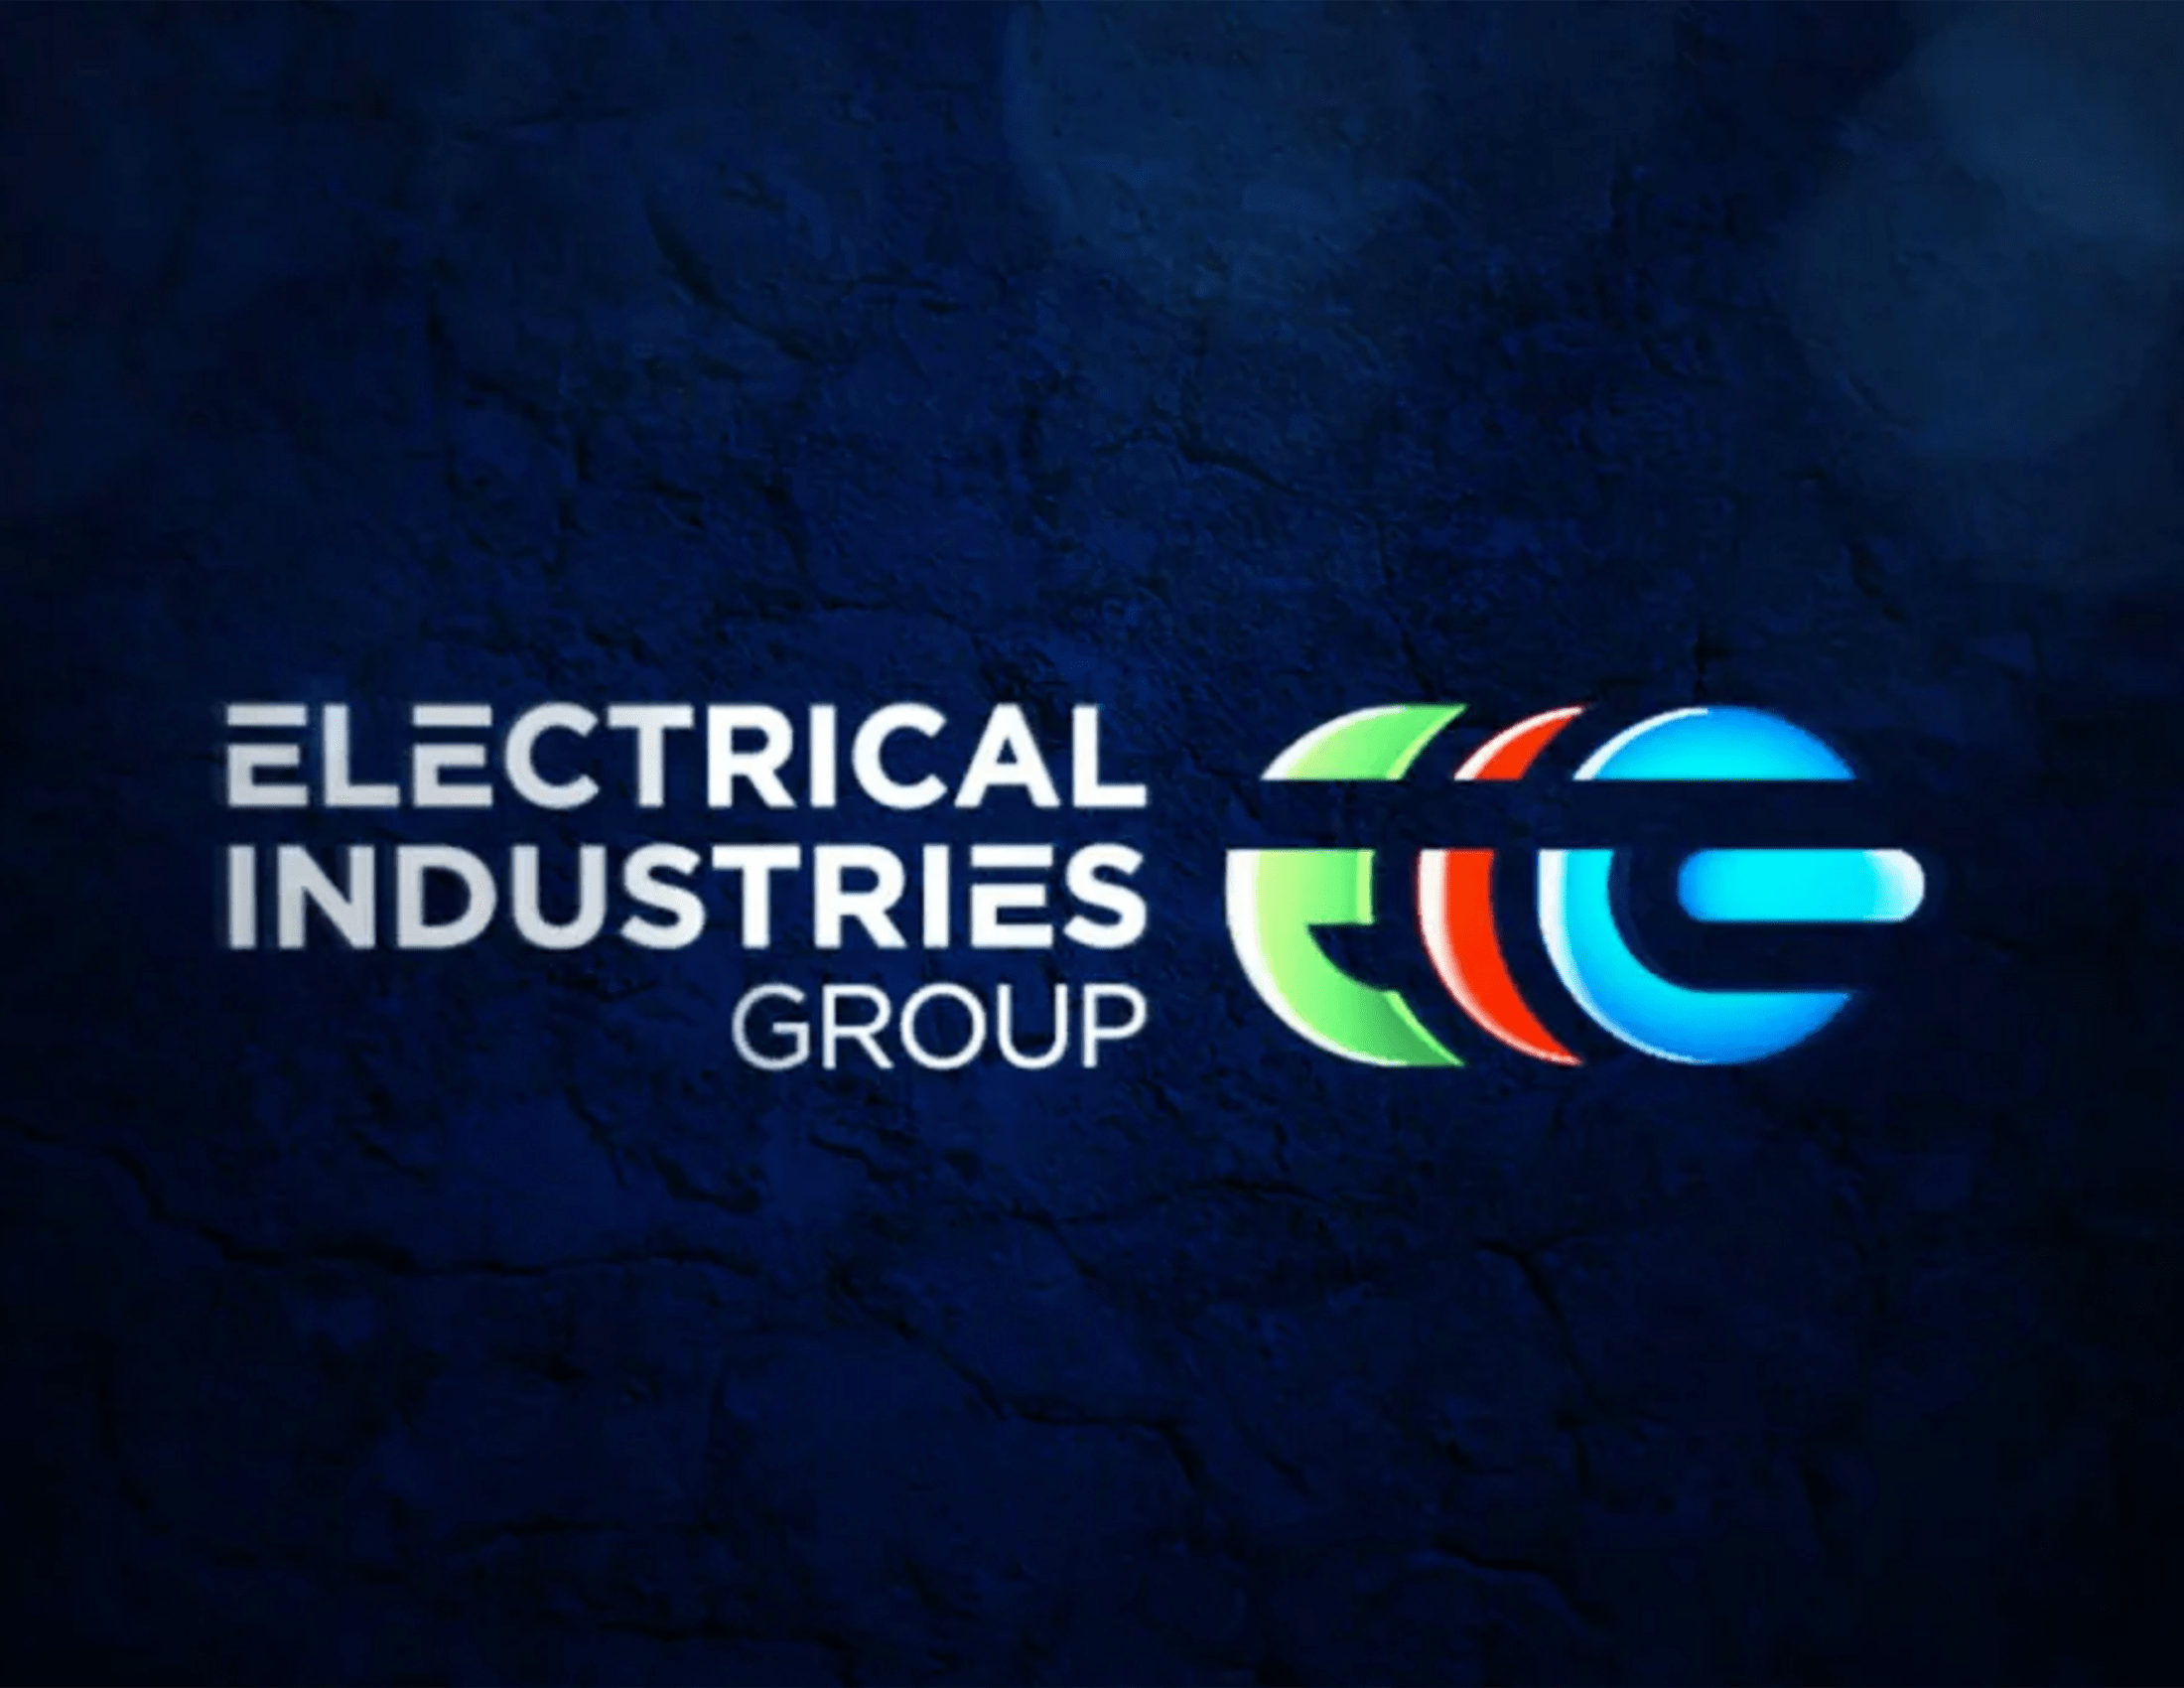 Electrical Industries Group – Corporate Video